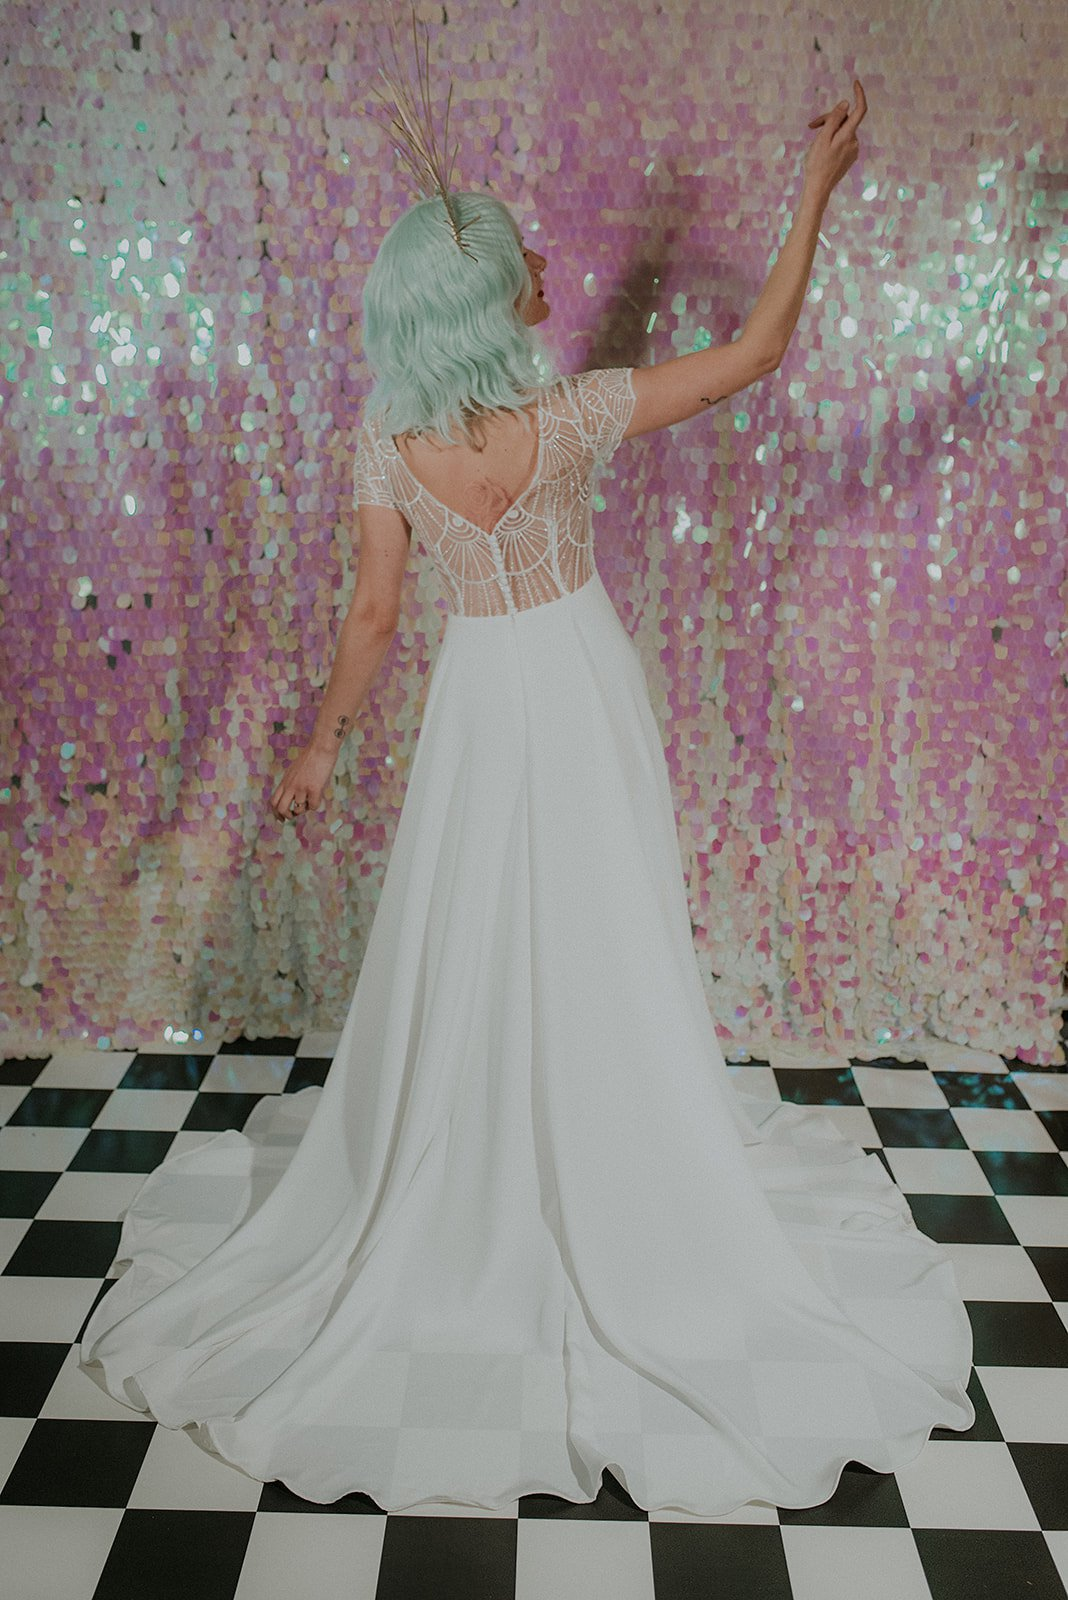 Lucy Cant Dance Cosmic Rodeo Alternative wedding dresses separates Megan Elle Photography 00026.jpg